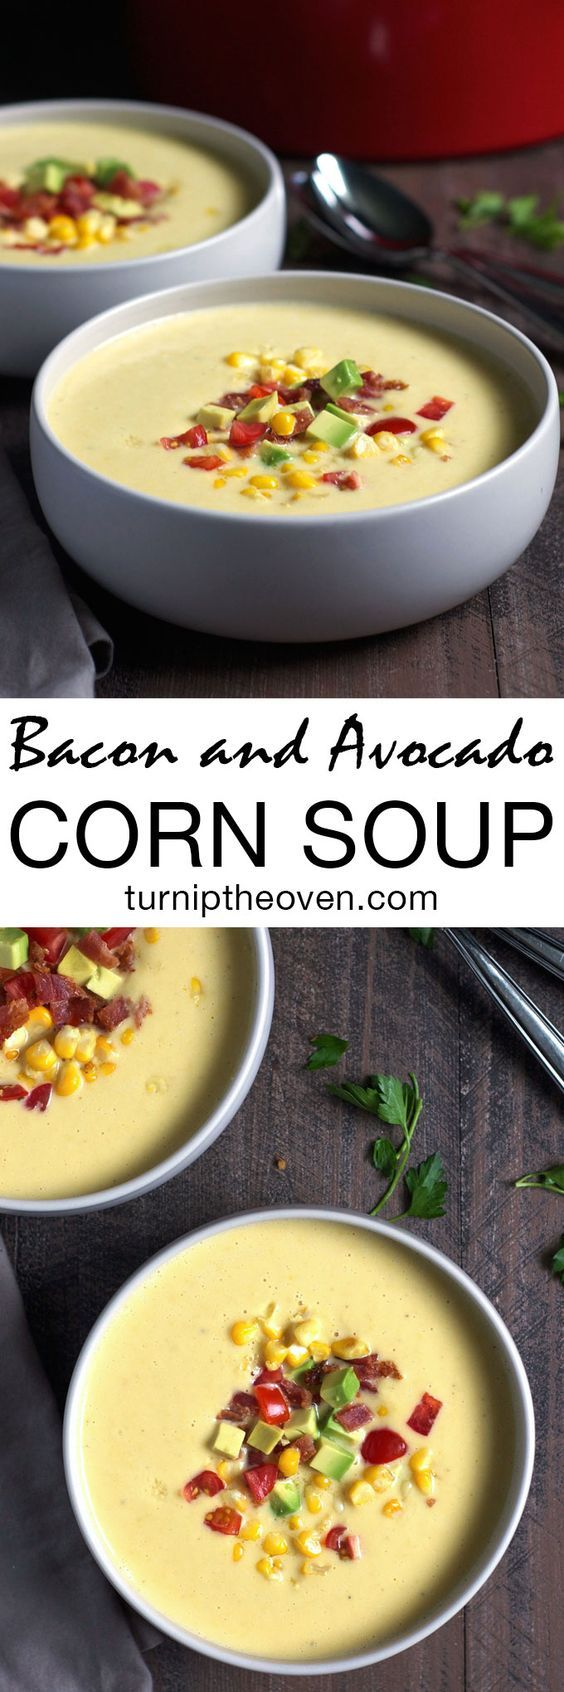 ... cold avocado soup with sweet corn and bacon recipe yummly avocado corn